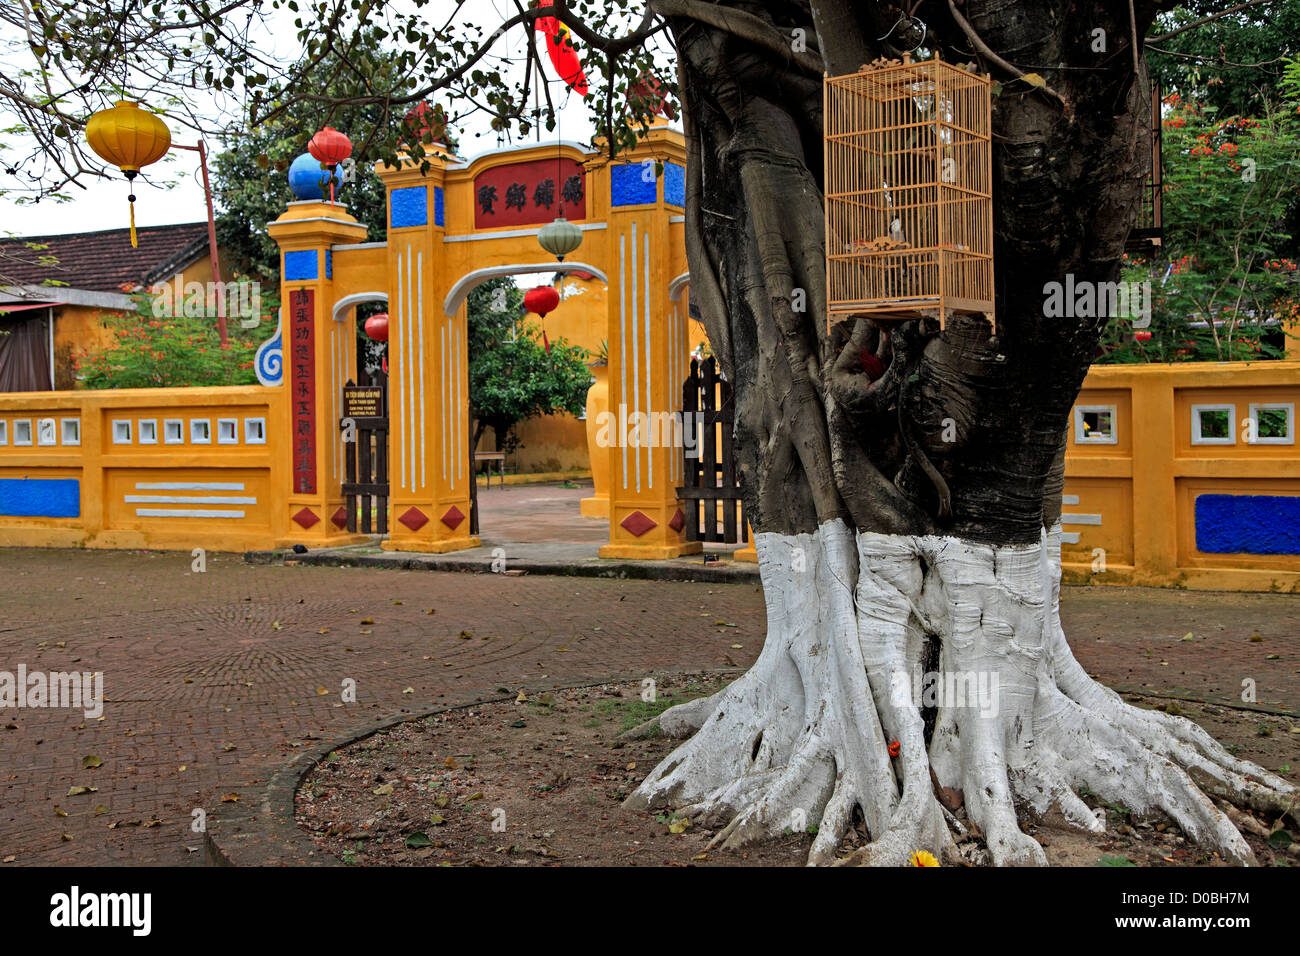 Songbird cage hanging on tree, Hoi An, Vietnam - Stock Image